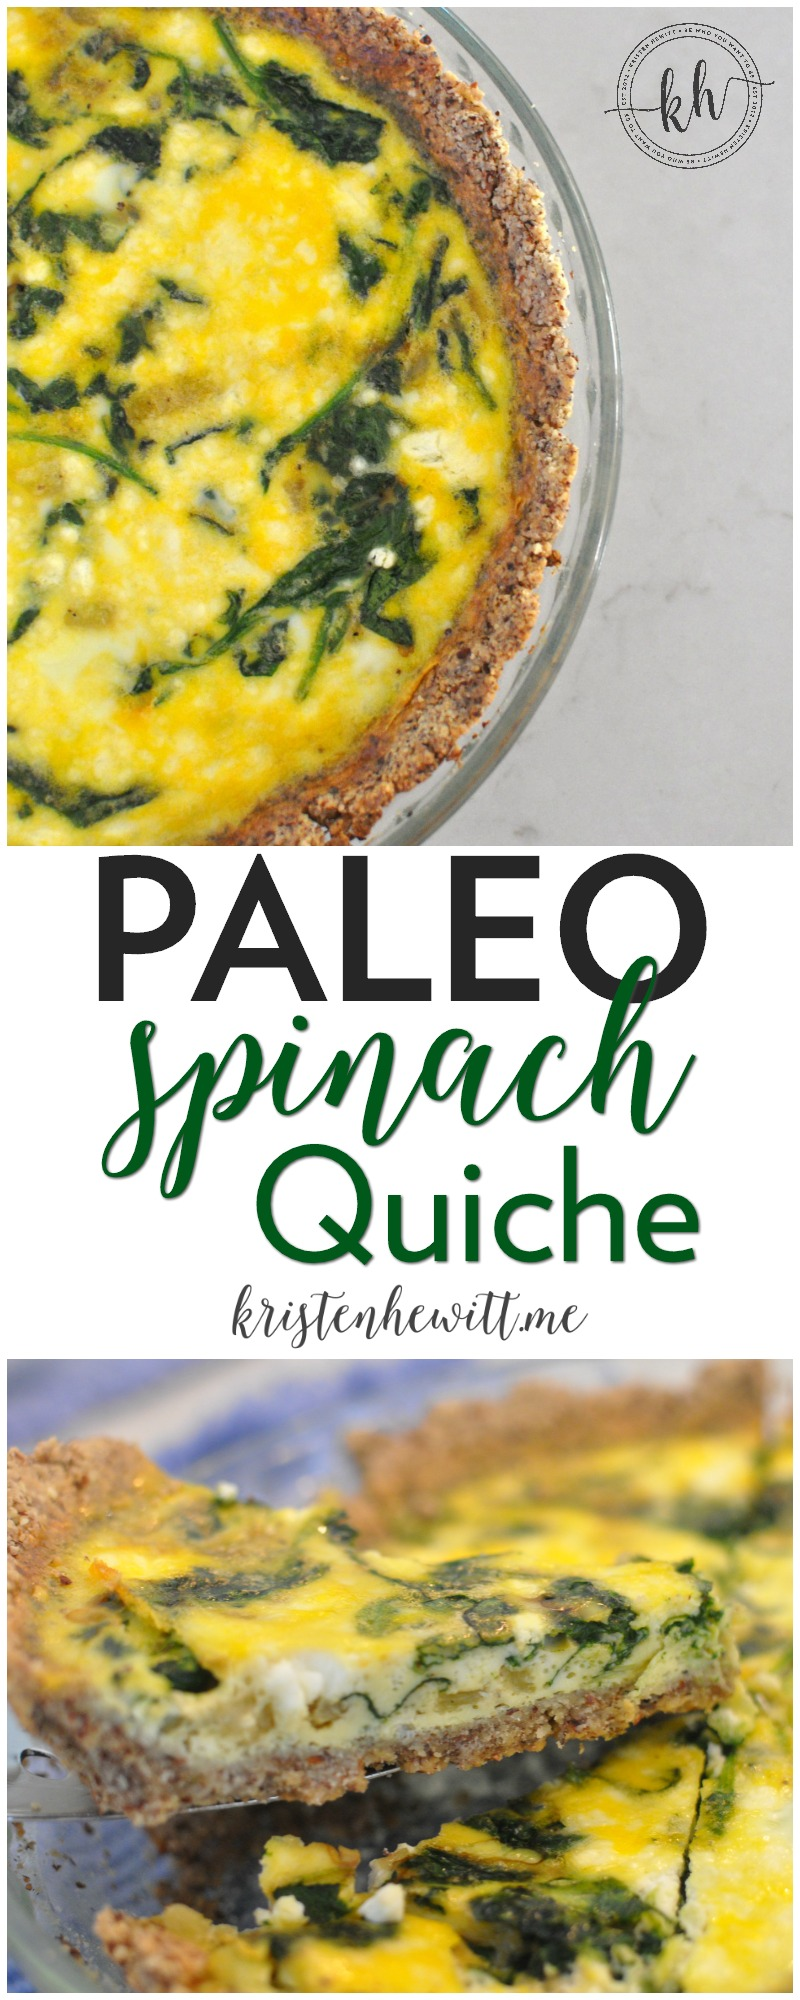 Looking for a delicious paleo breakfast recipe? Then try this paleo spinach quiche! It's perfect for a brunch and really easy to make.